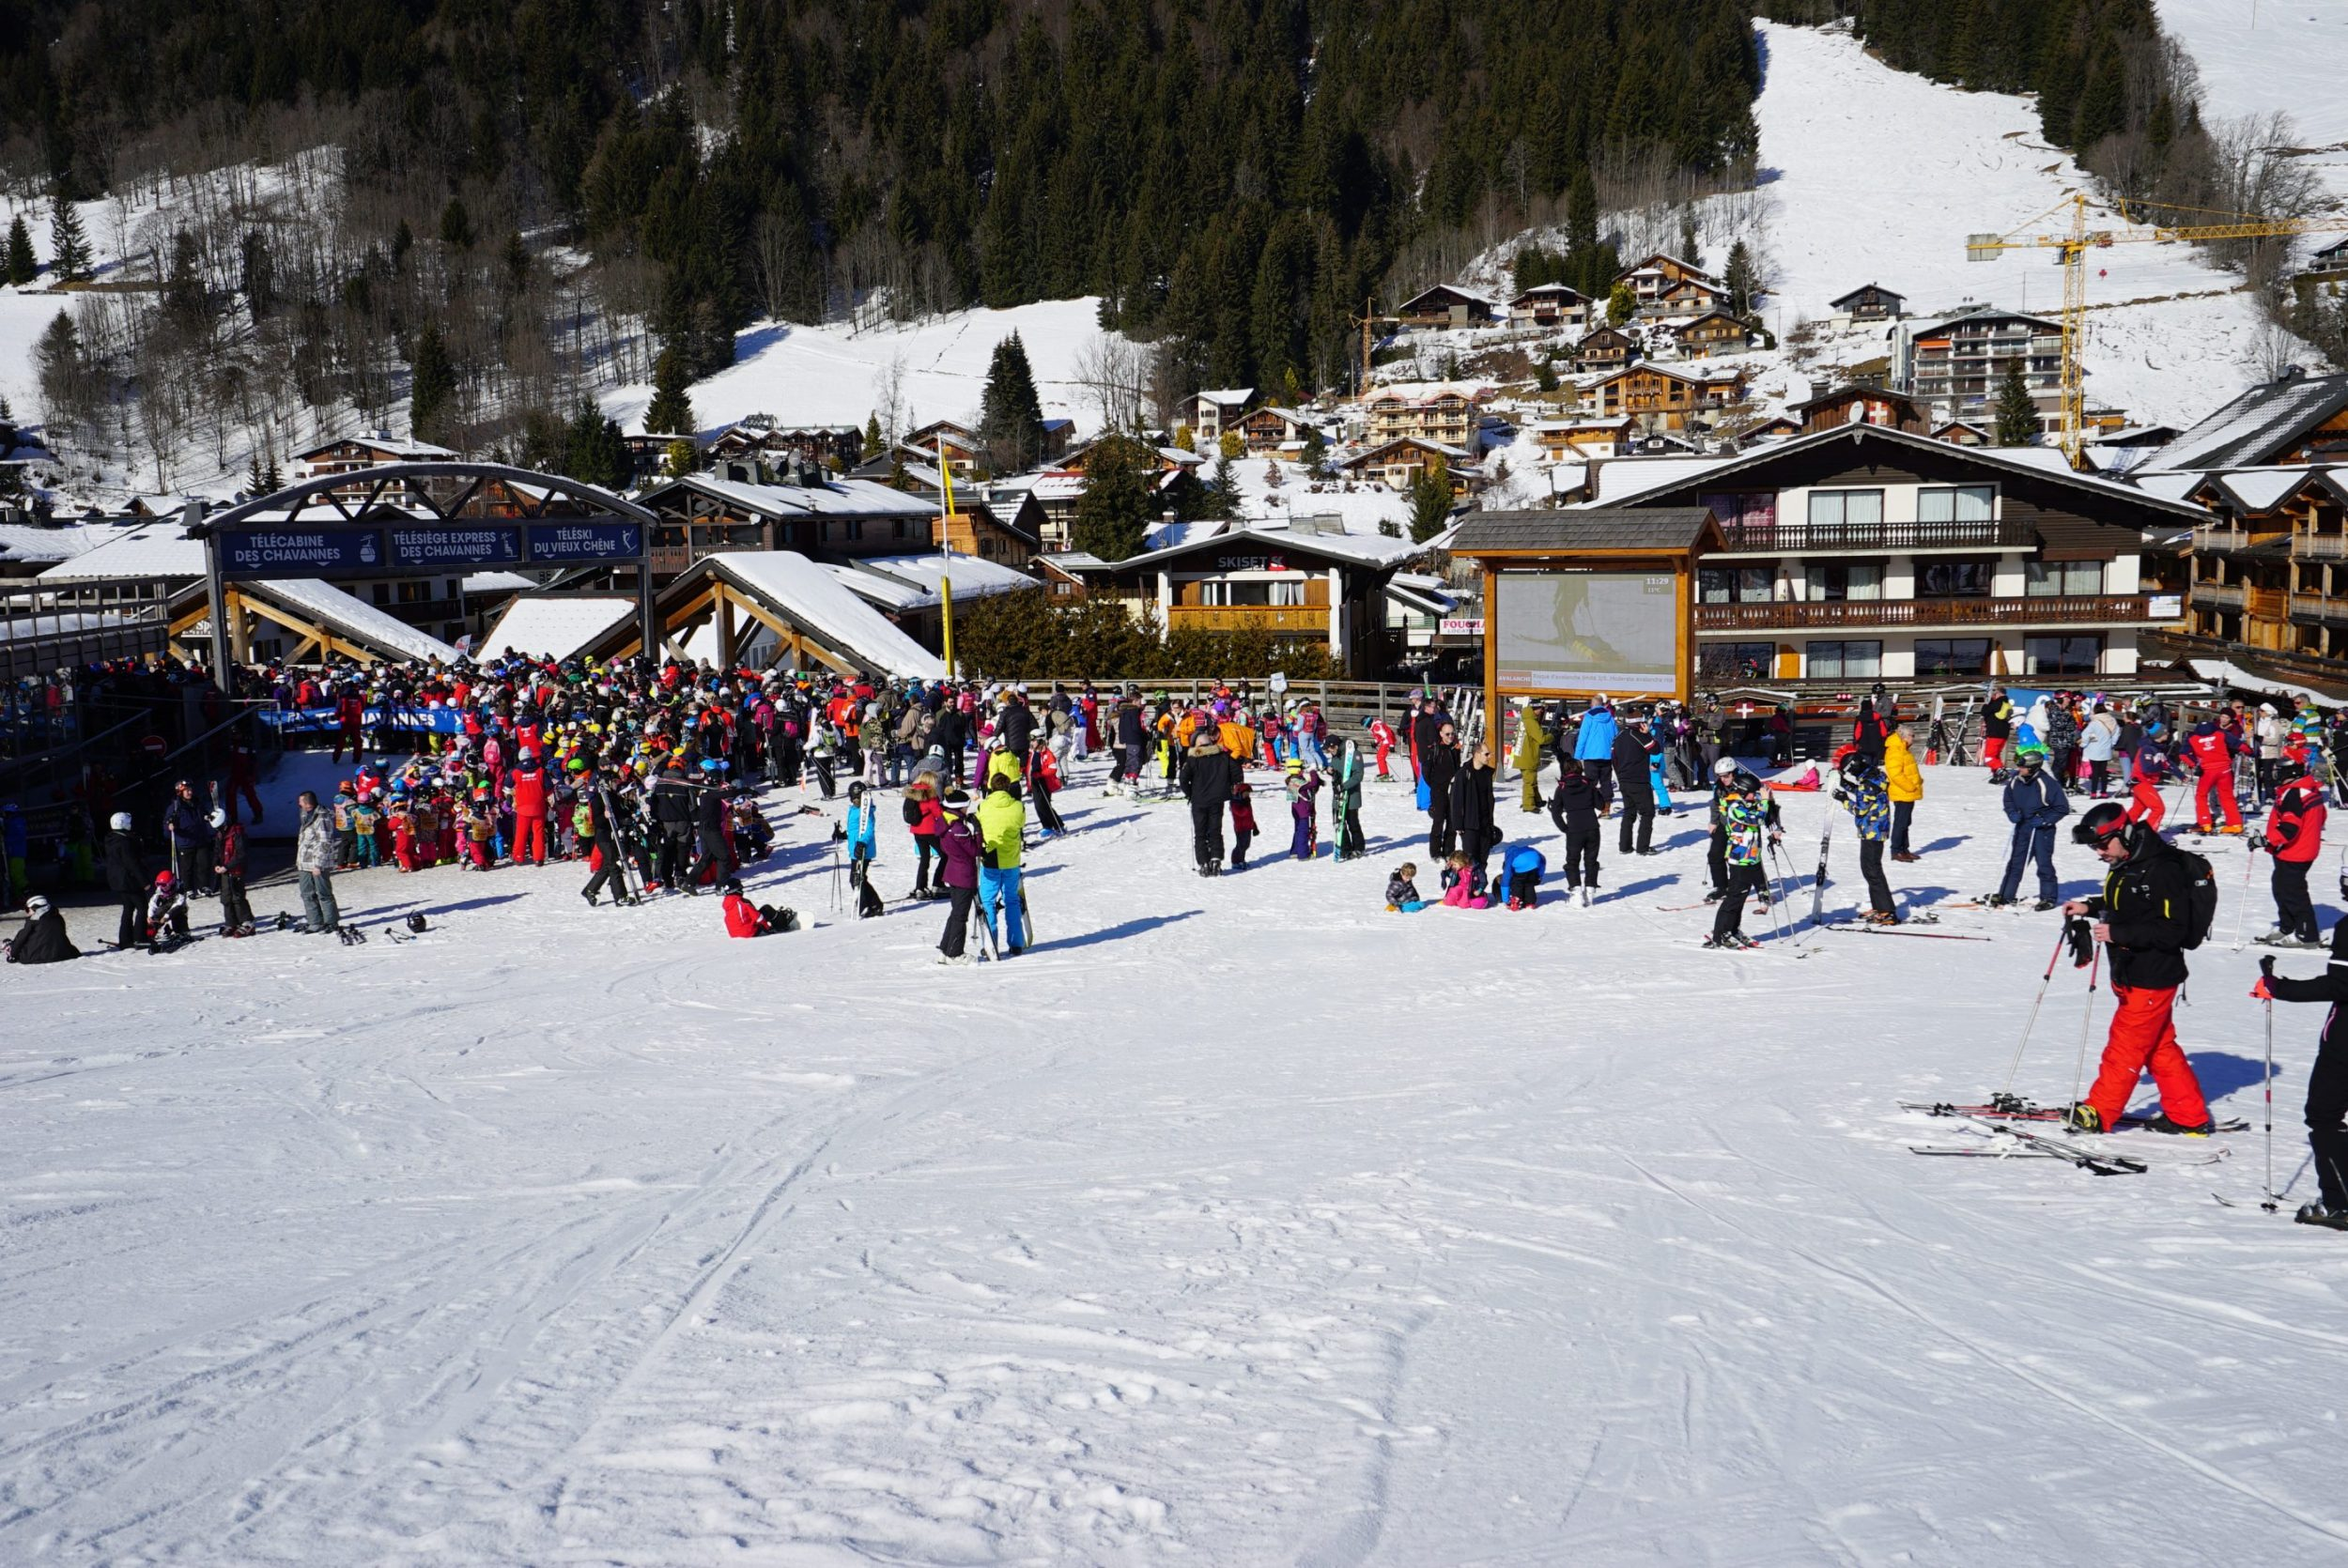 Station de Ski - Les Gets